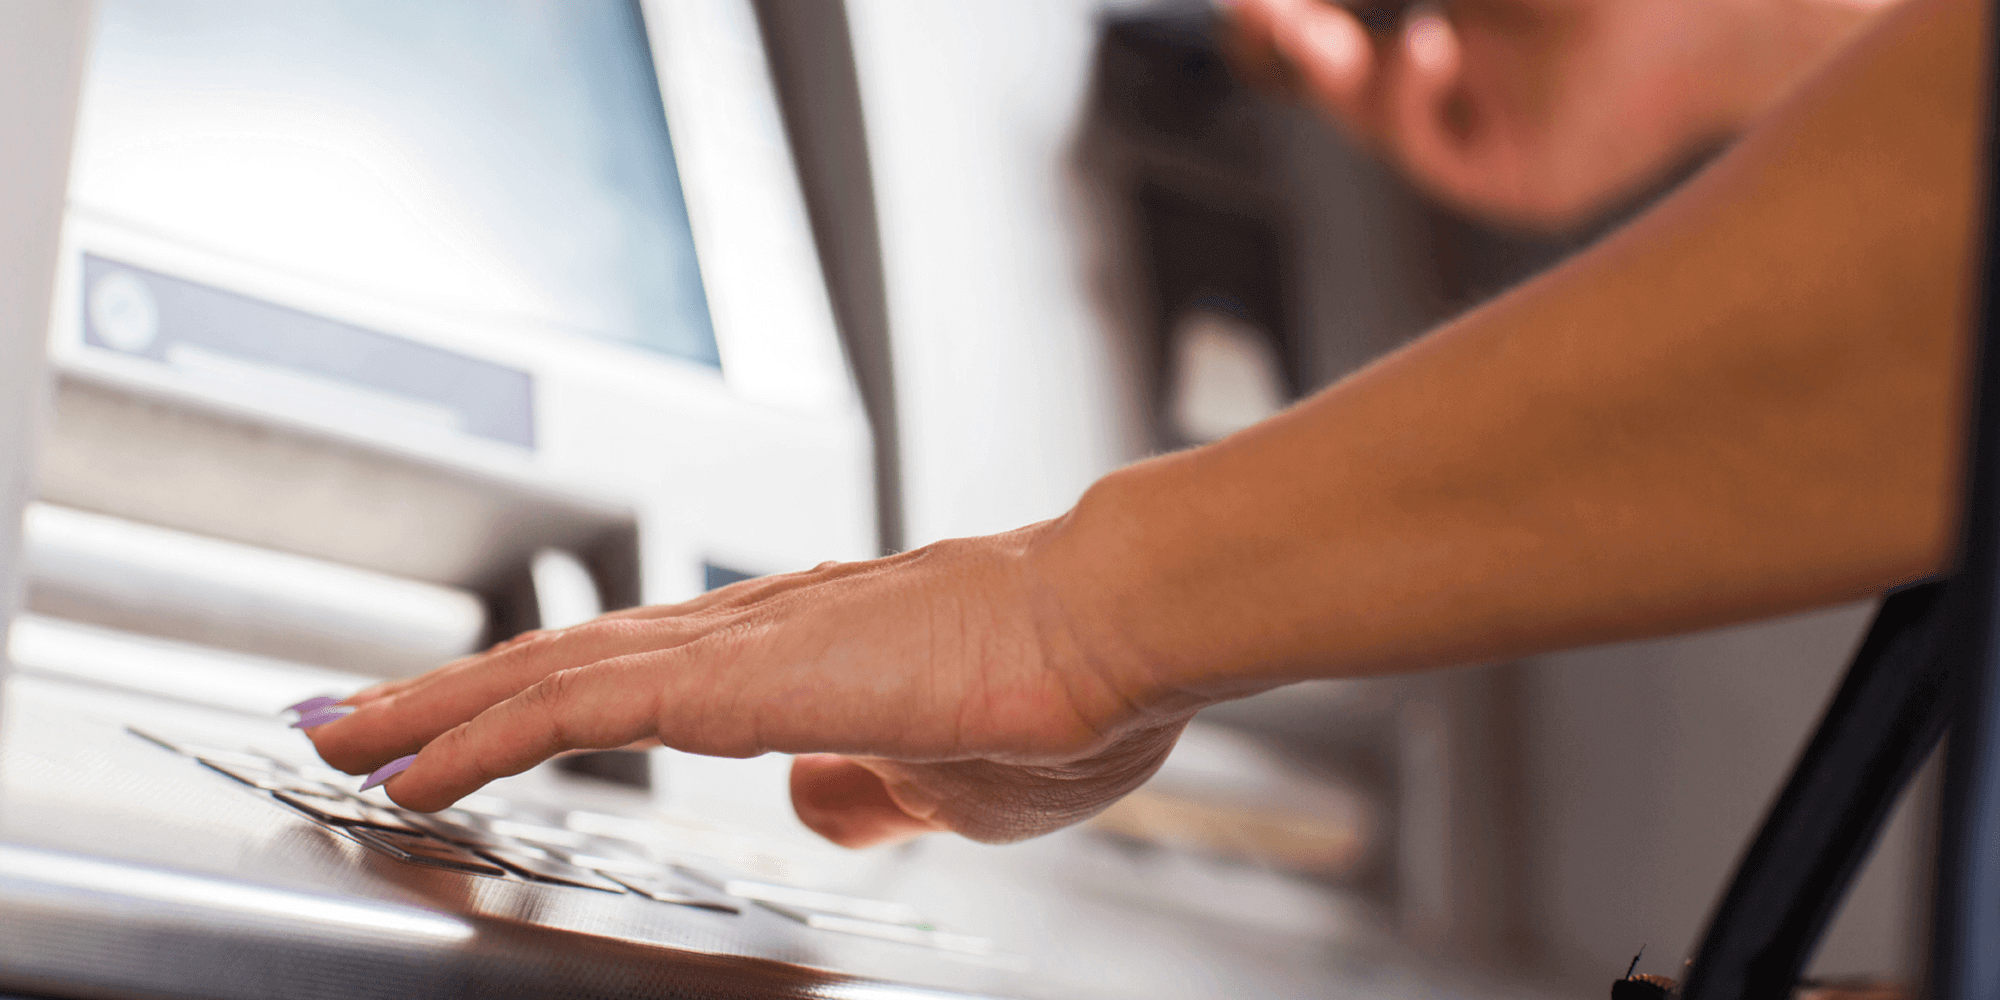 ATM Products & Services